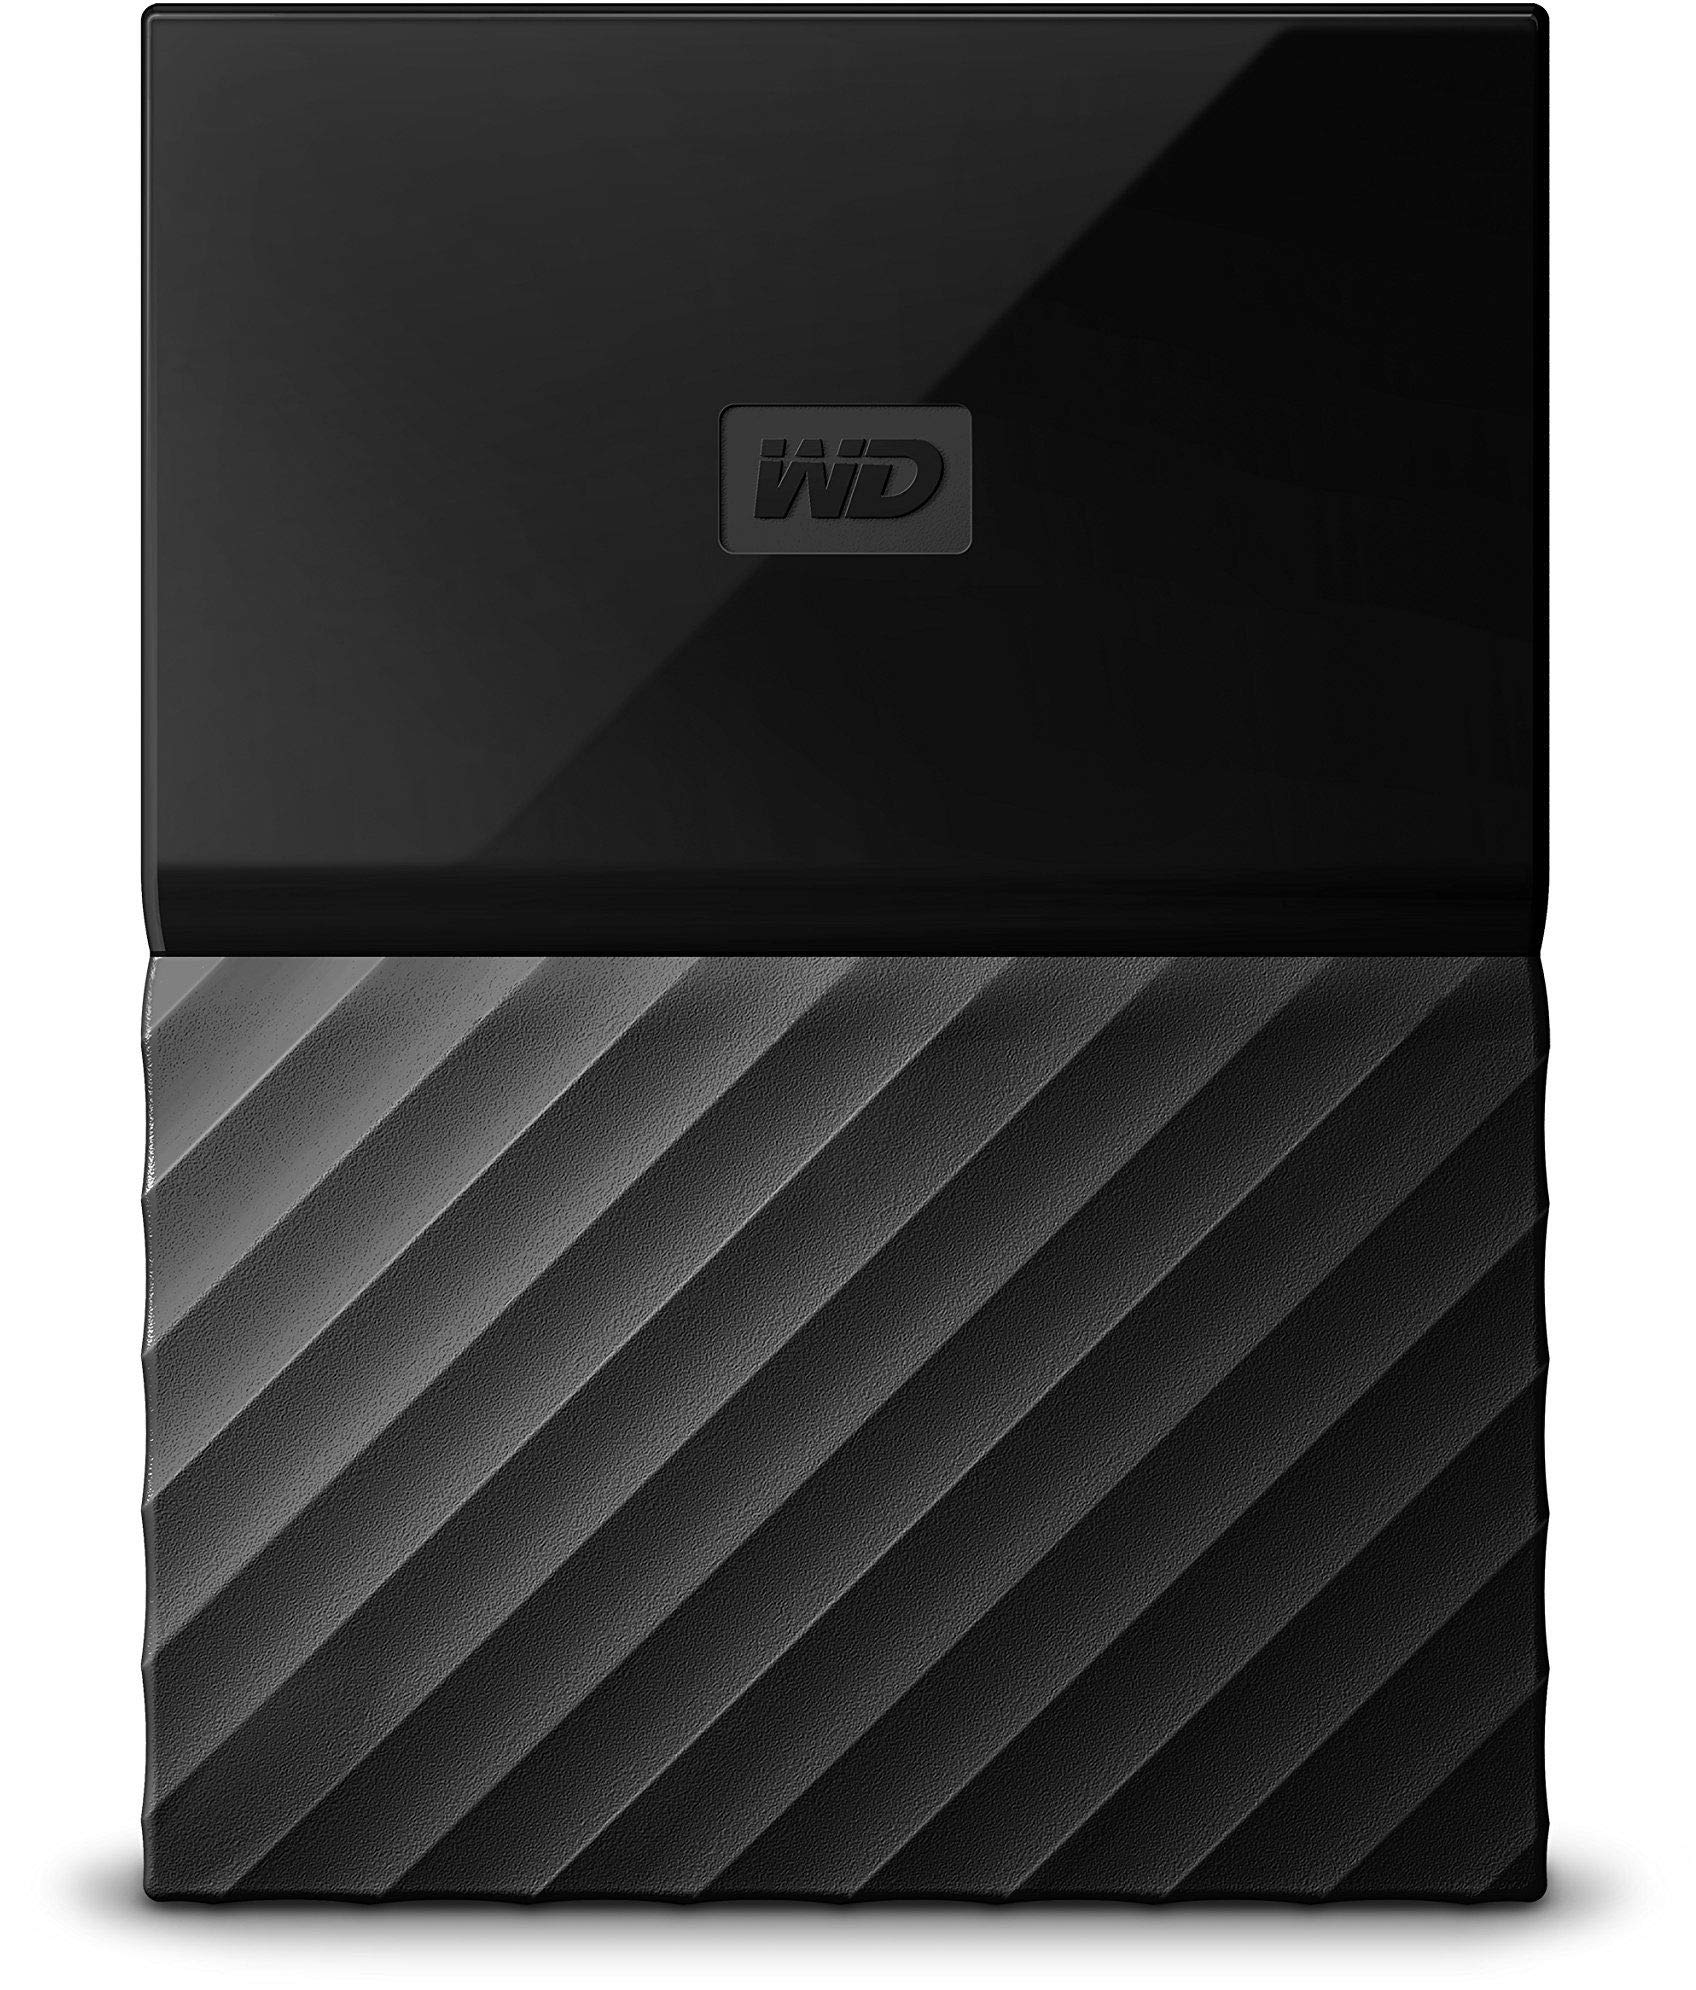 WD 4TB Black My Passport  Portable External Hard Drive - USB 3.0 - WDBYFT0040BBK-WESN by Western Digital